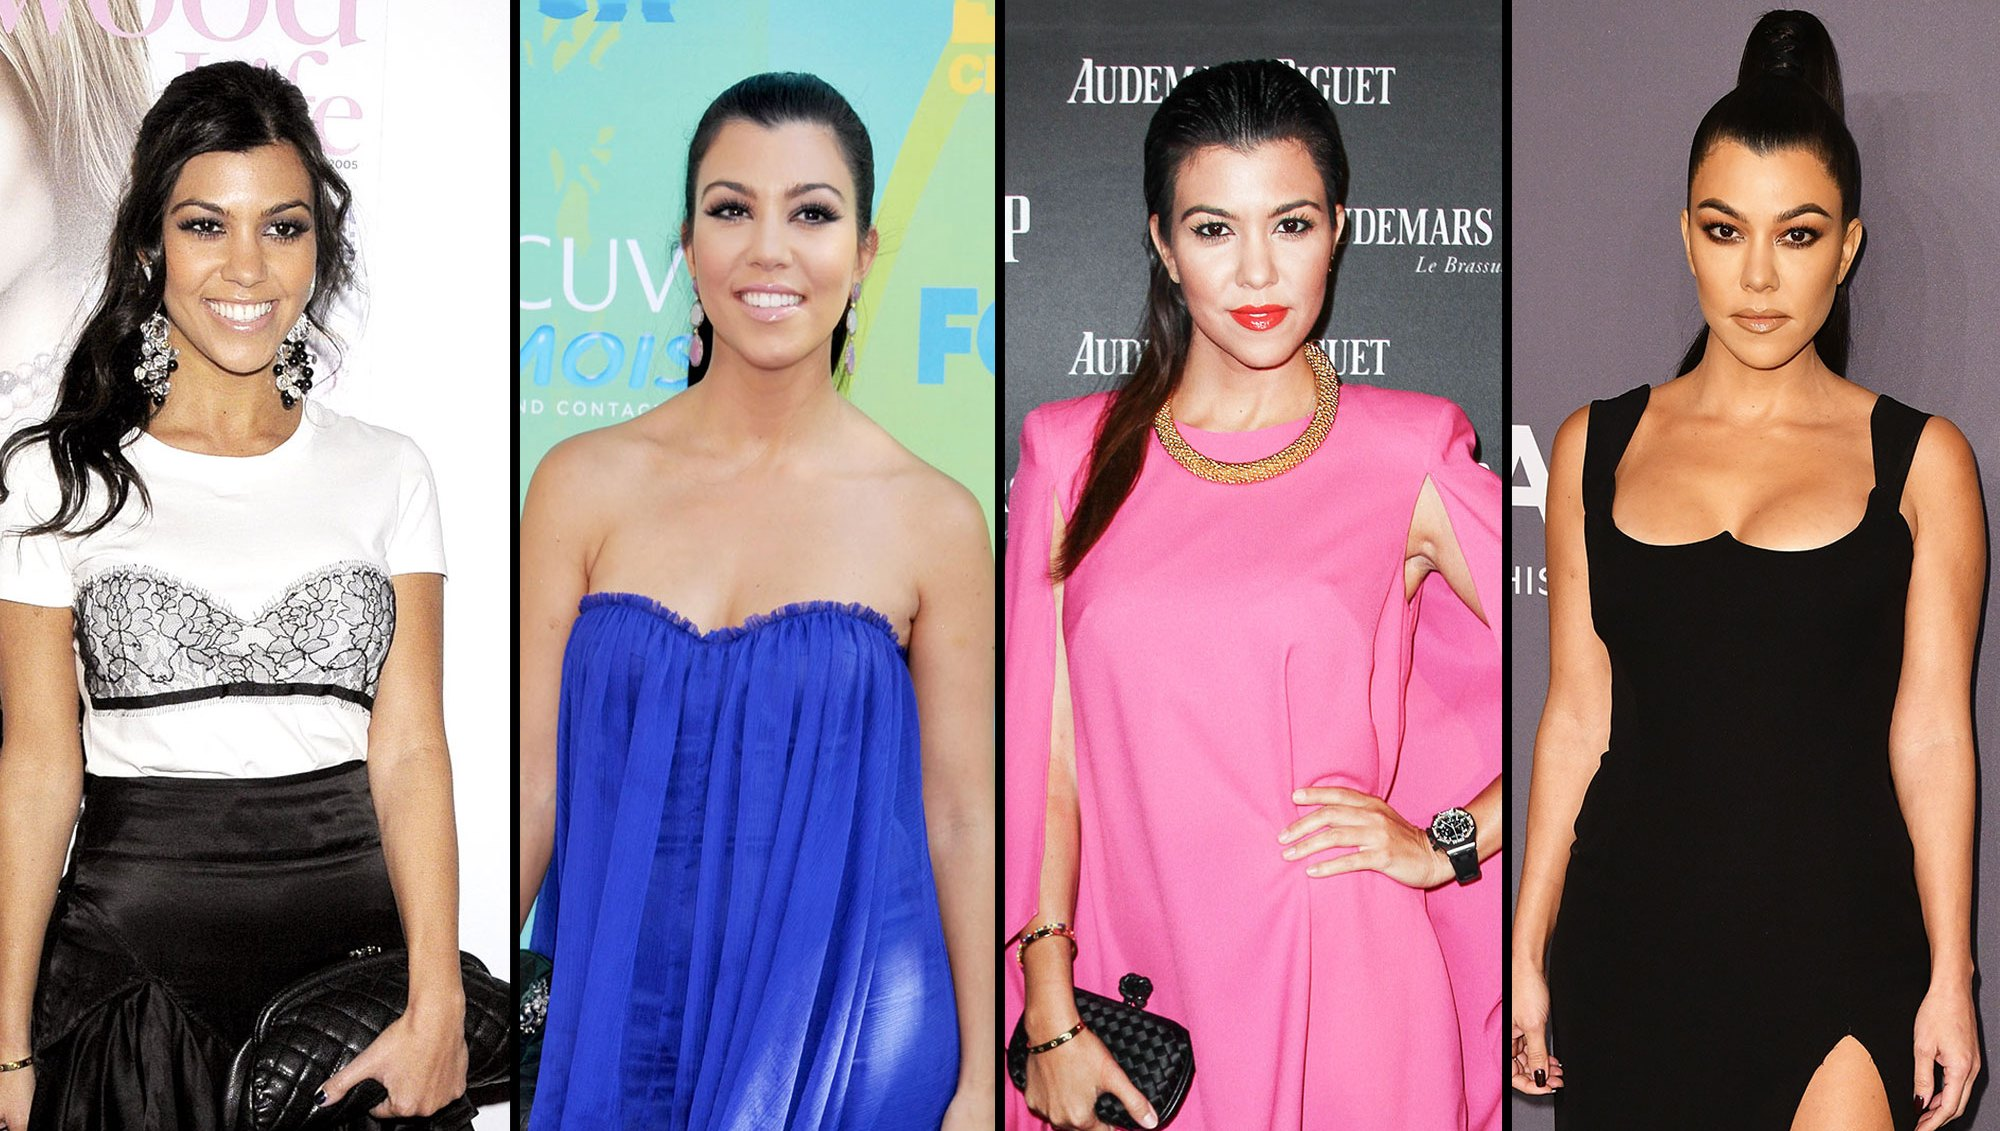 Happy 40th Birthday, Kourtney Kardashian